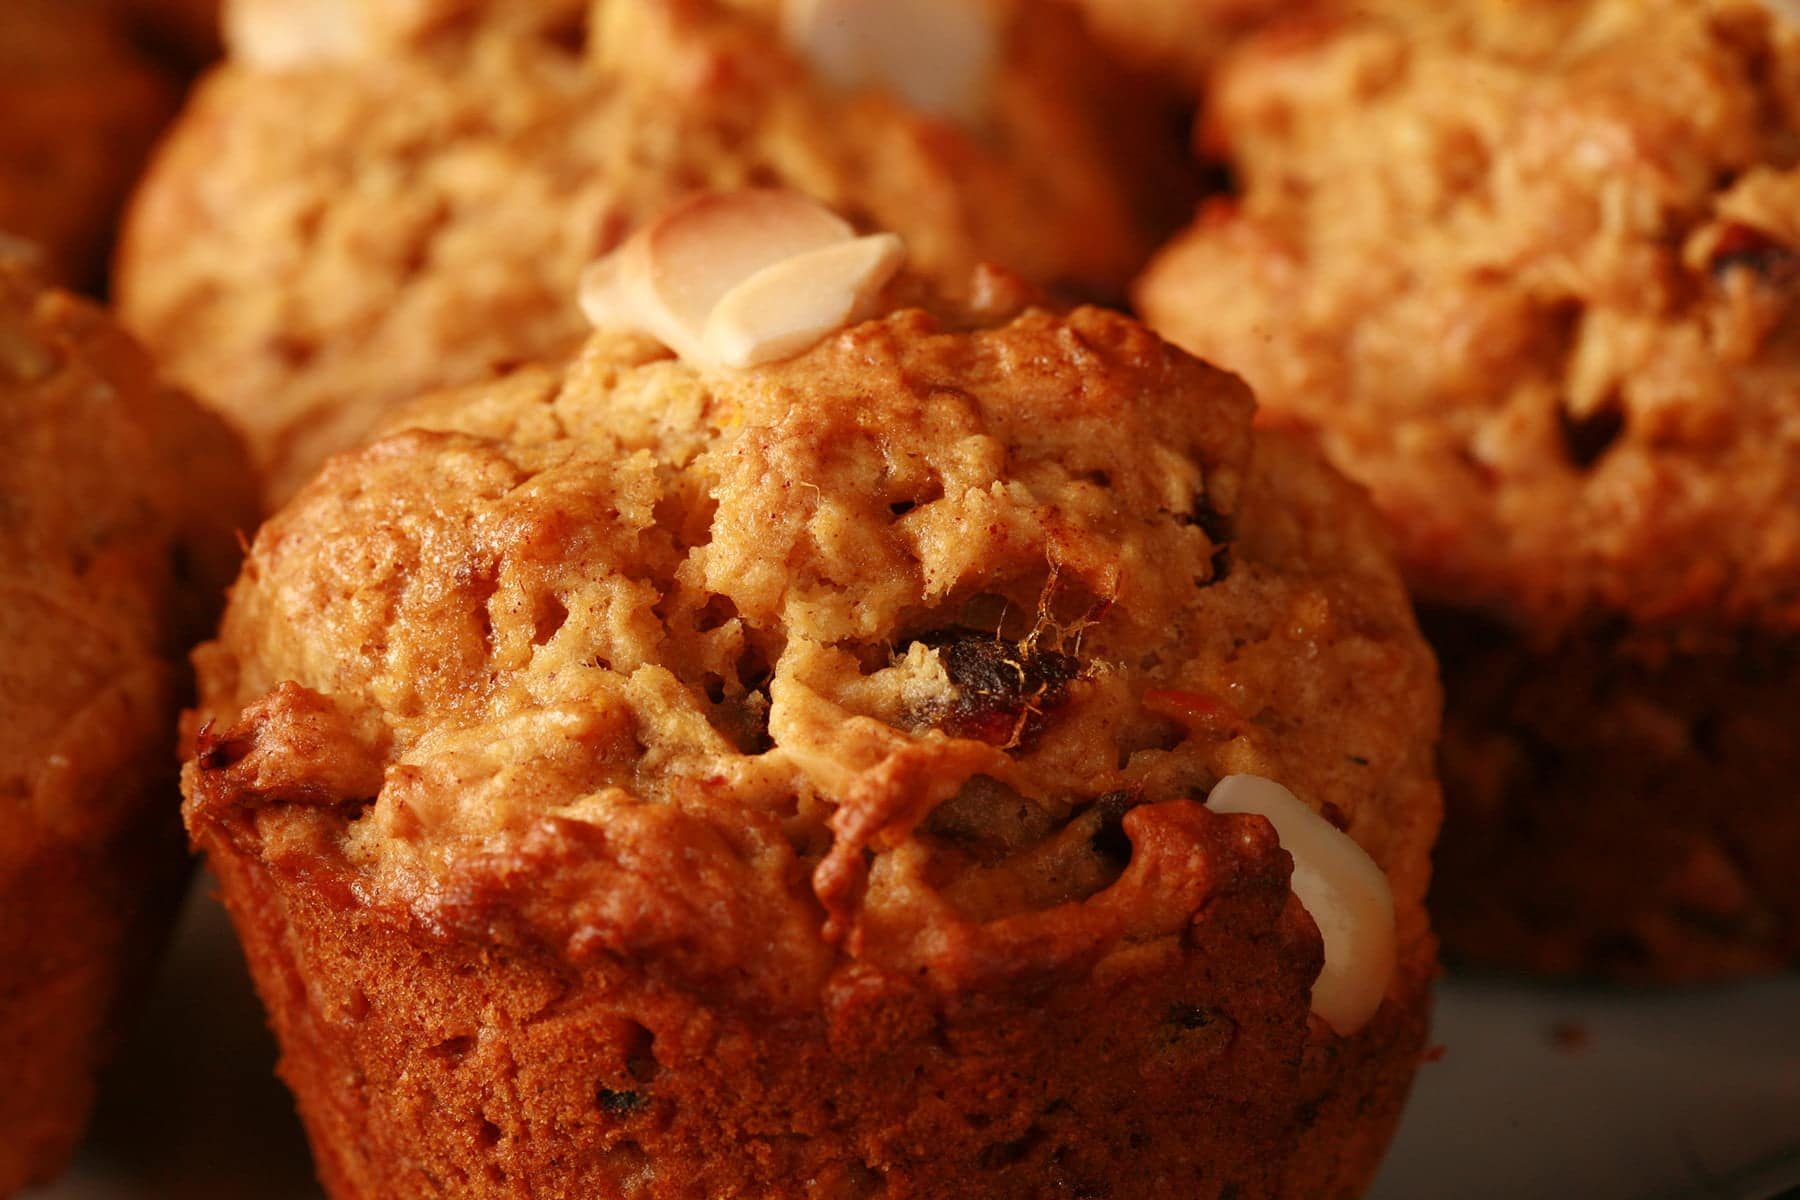 A plate of orange-brown muffins, with slices of almonds and chunks of dates visible throughout.